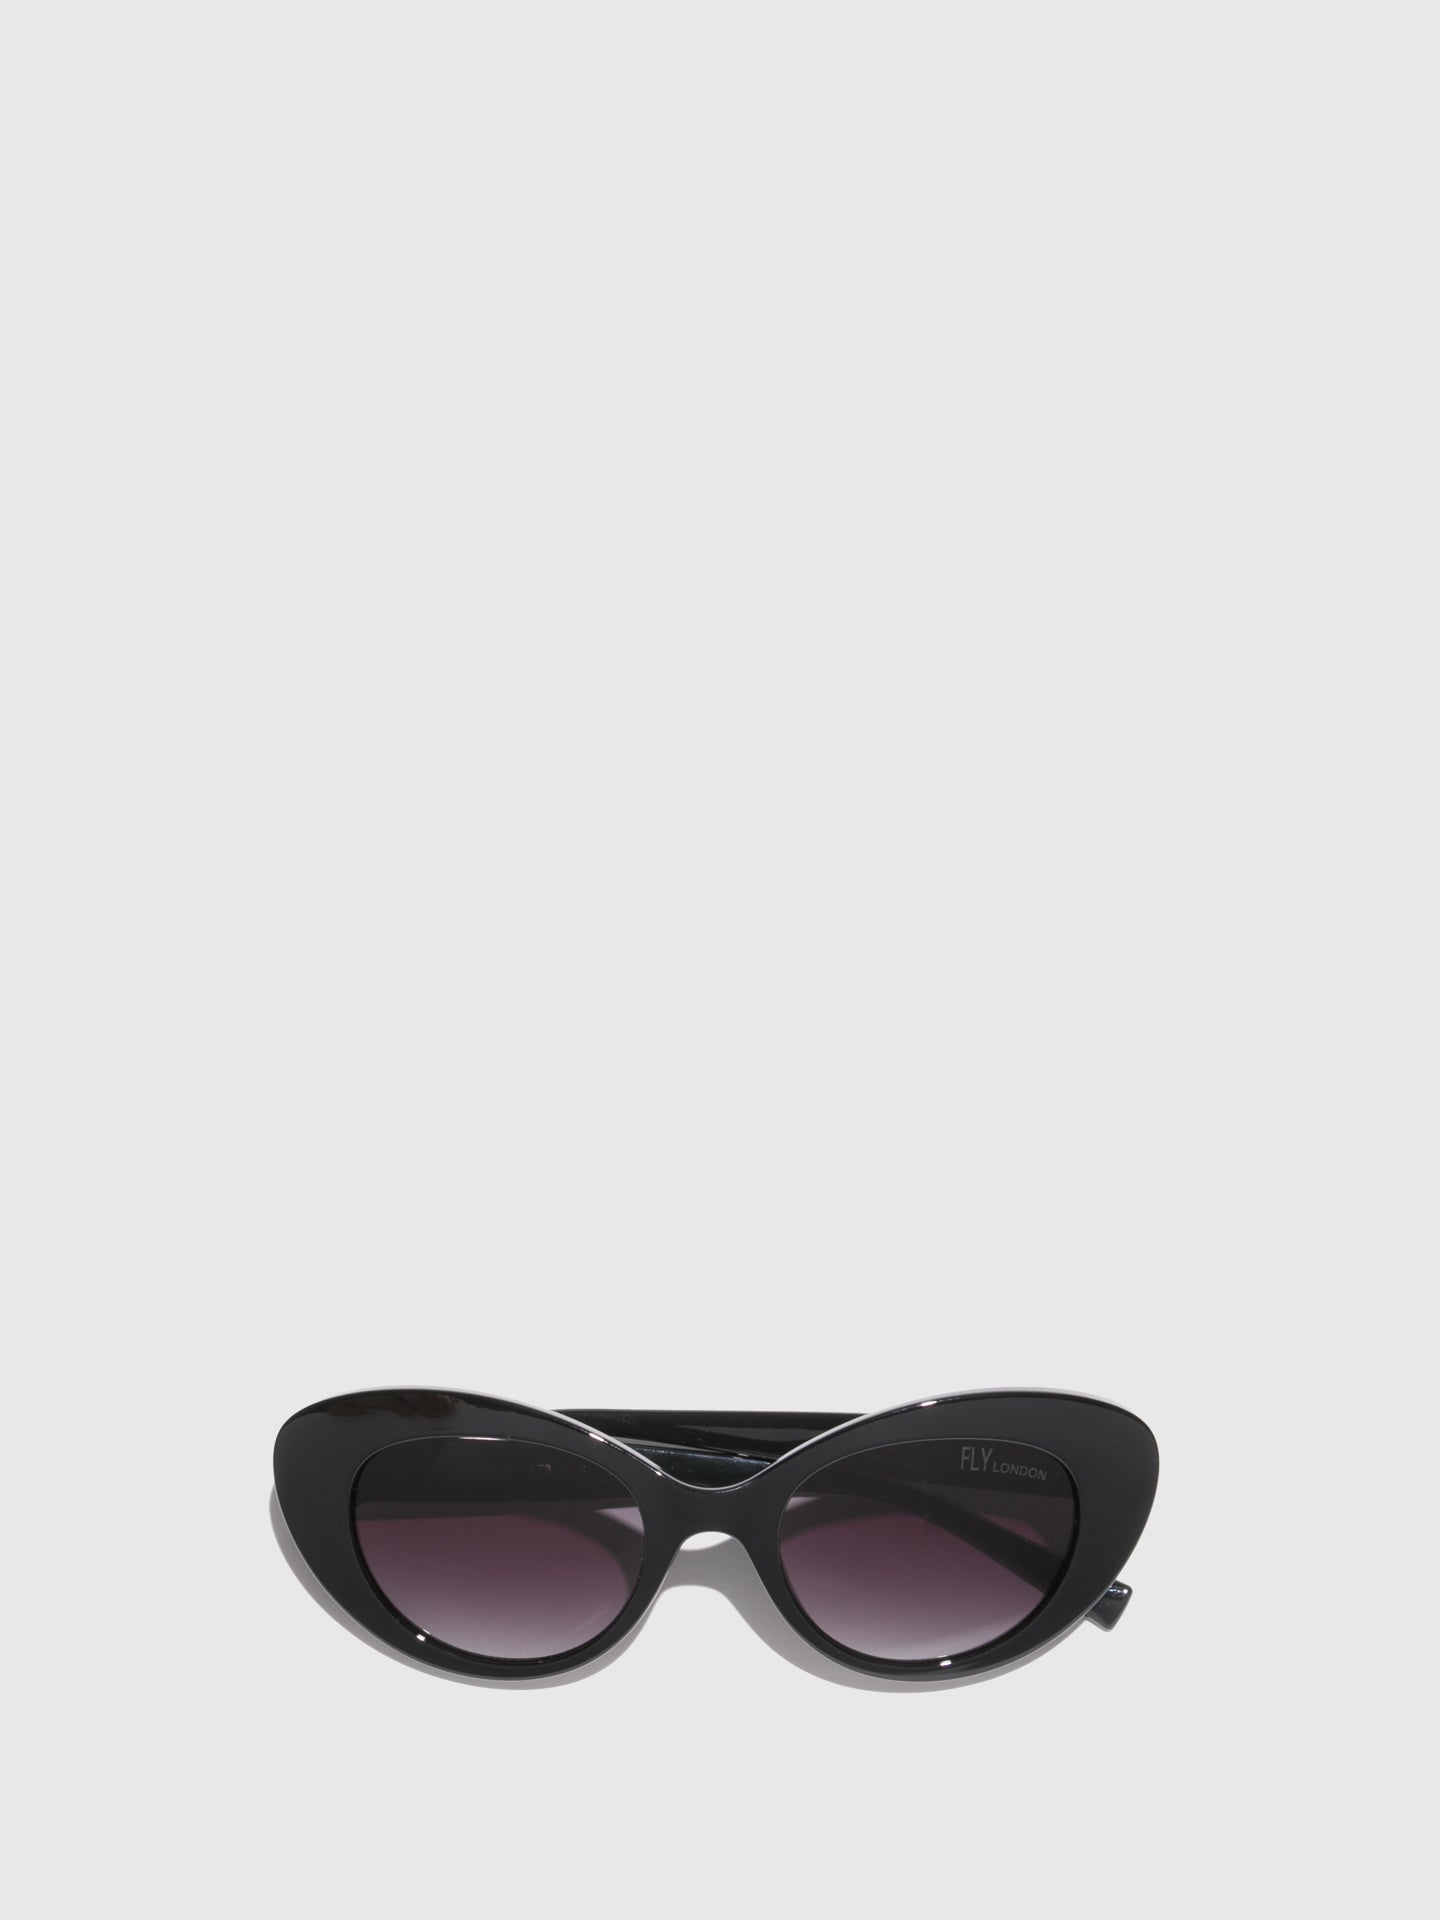 Fly London Black Cat Eye Sunglasses